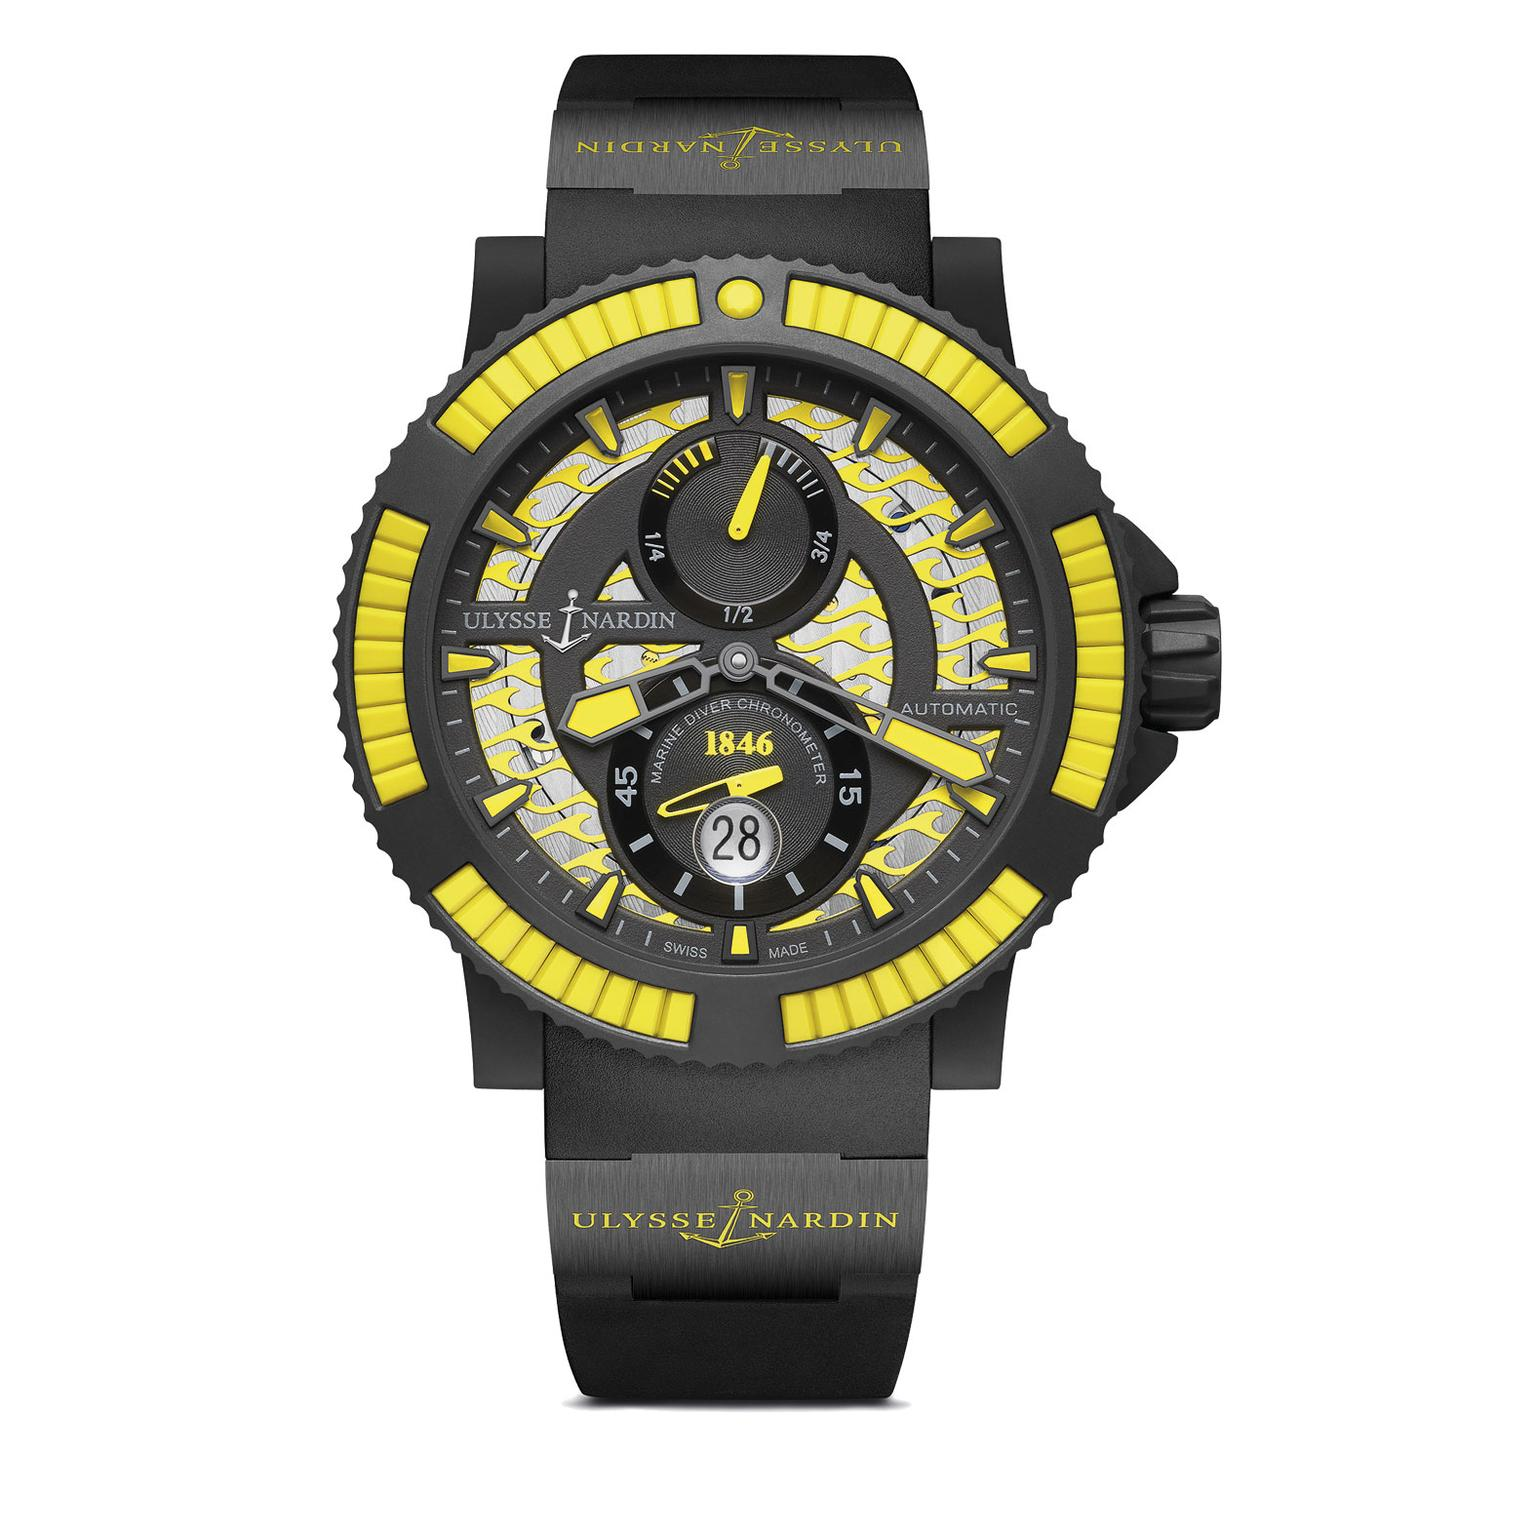 The coolest watches for him this Christmas